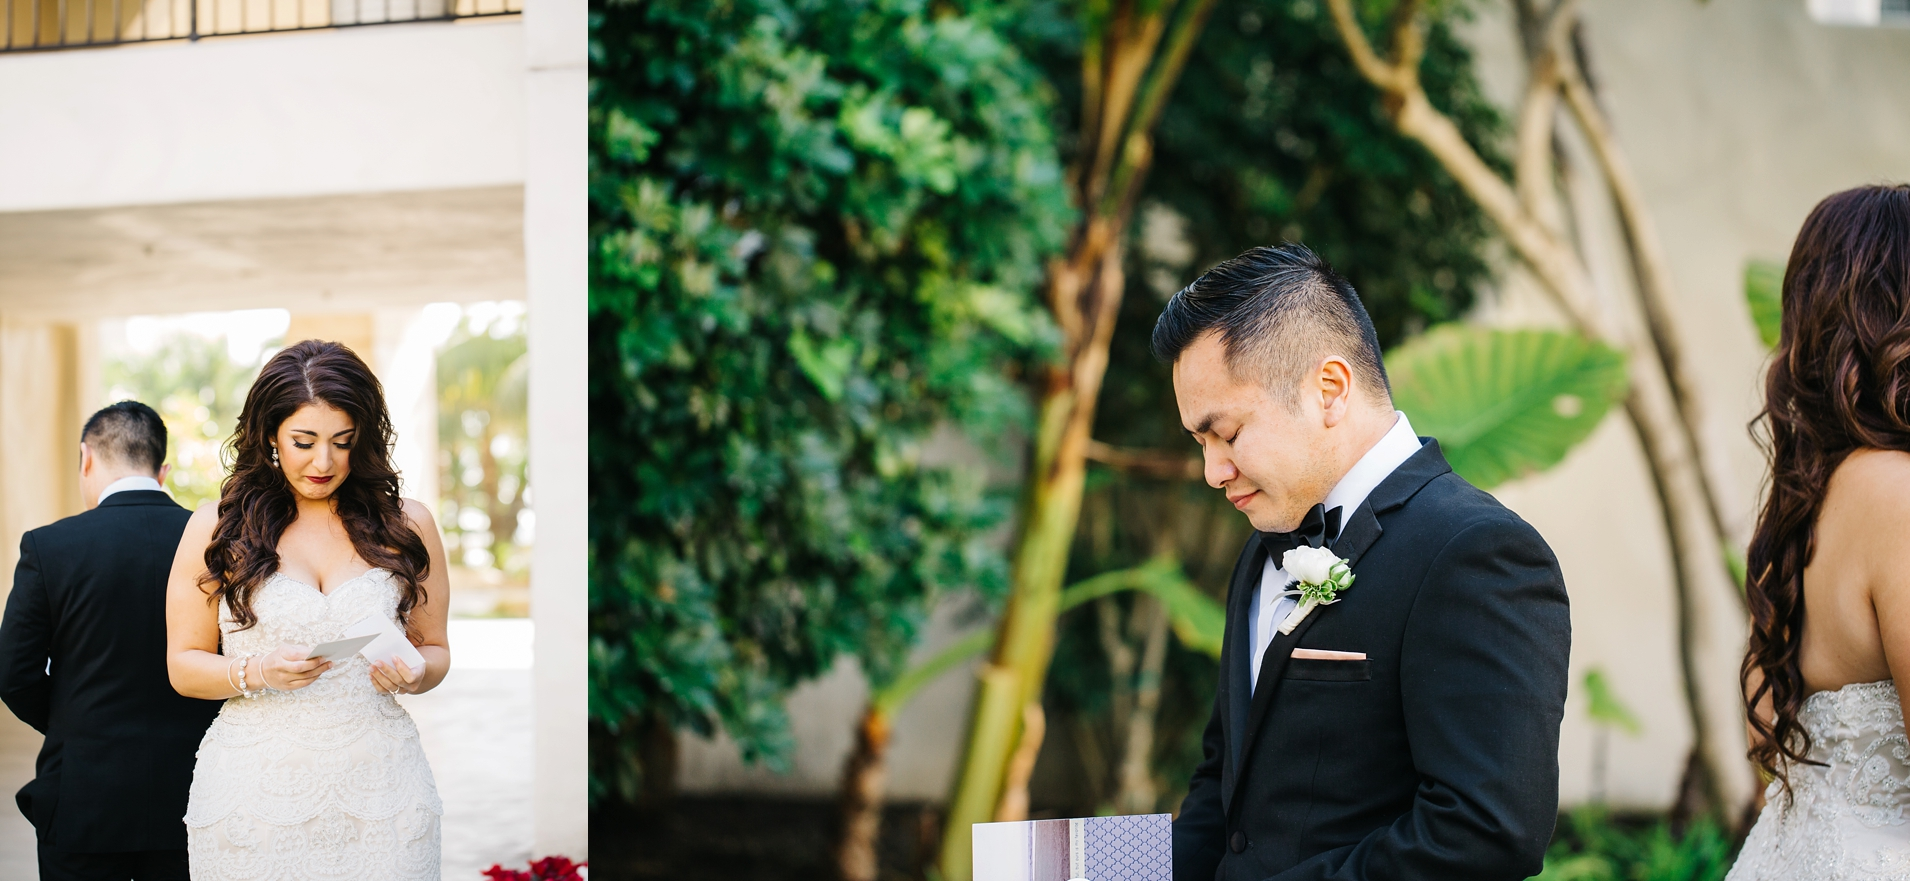 Bride and Groom First Look in Southern California - Brittney Hannon Photography